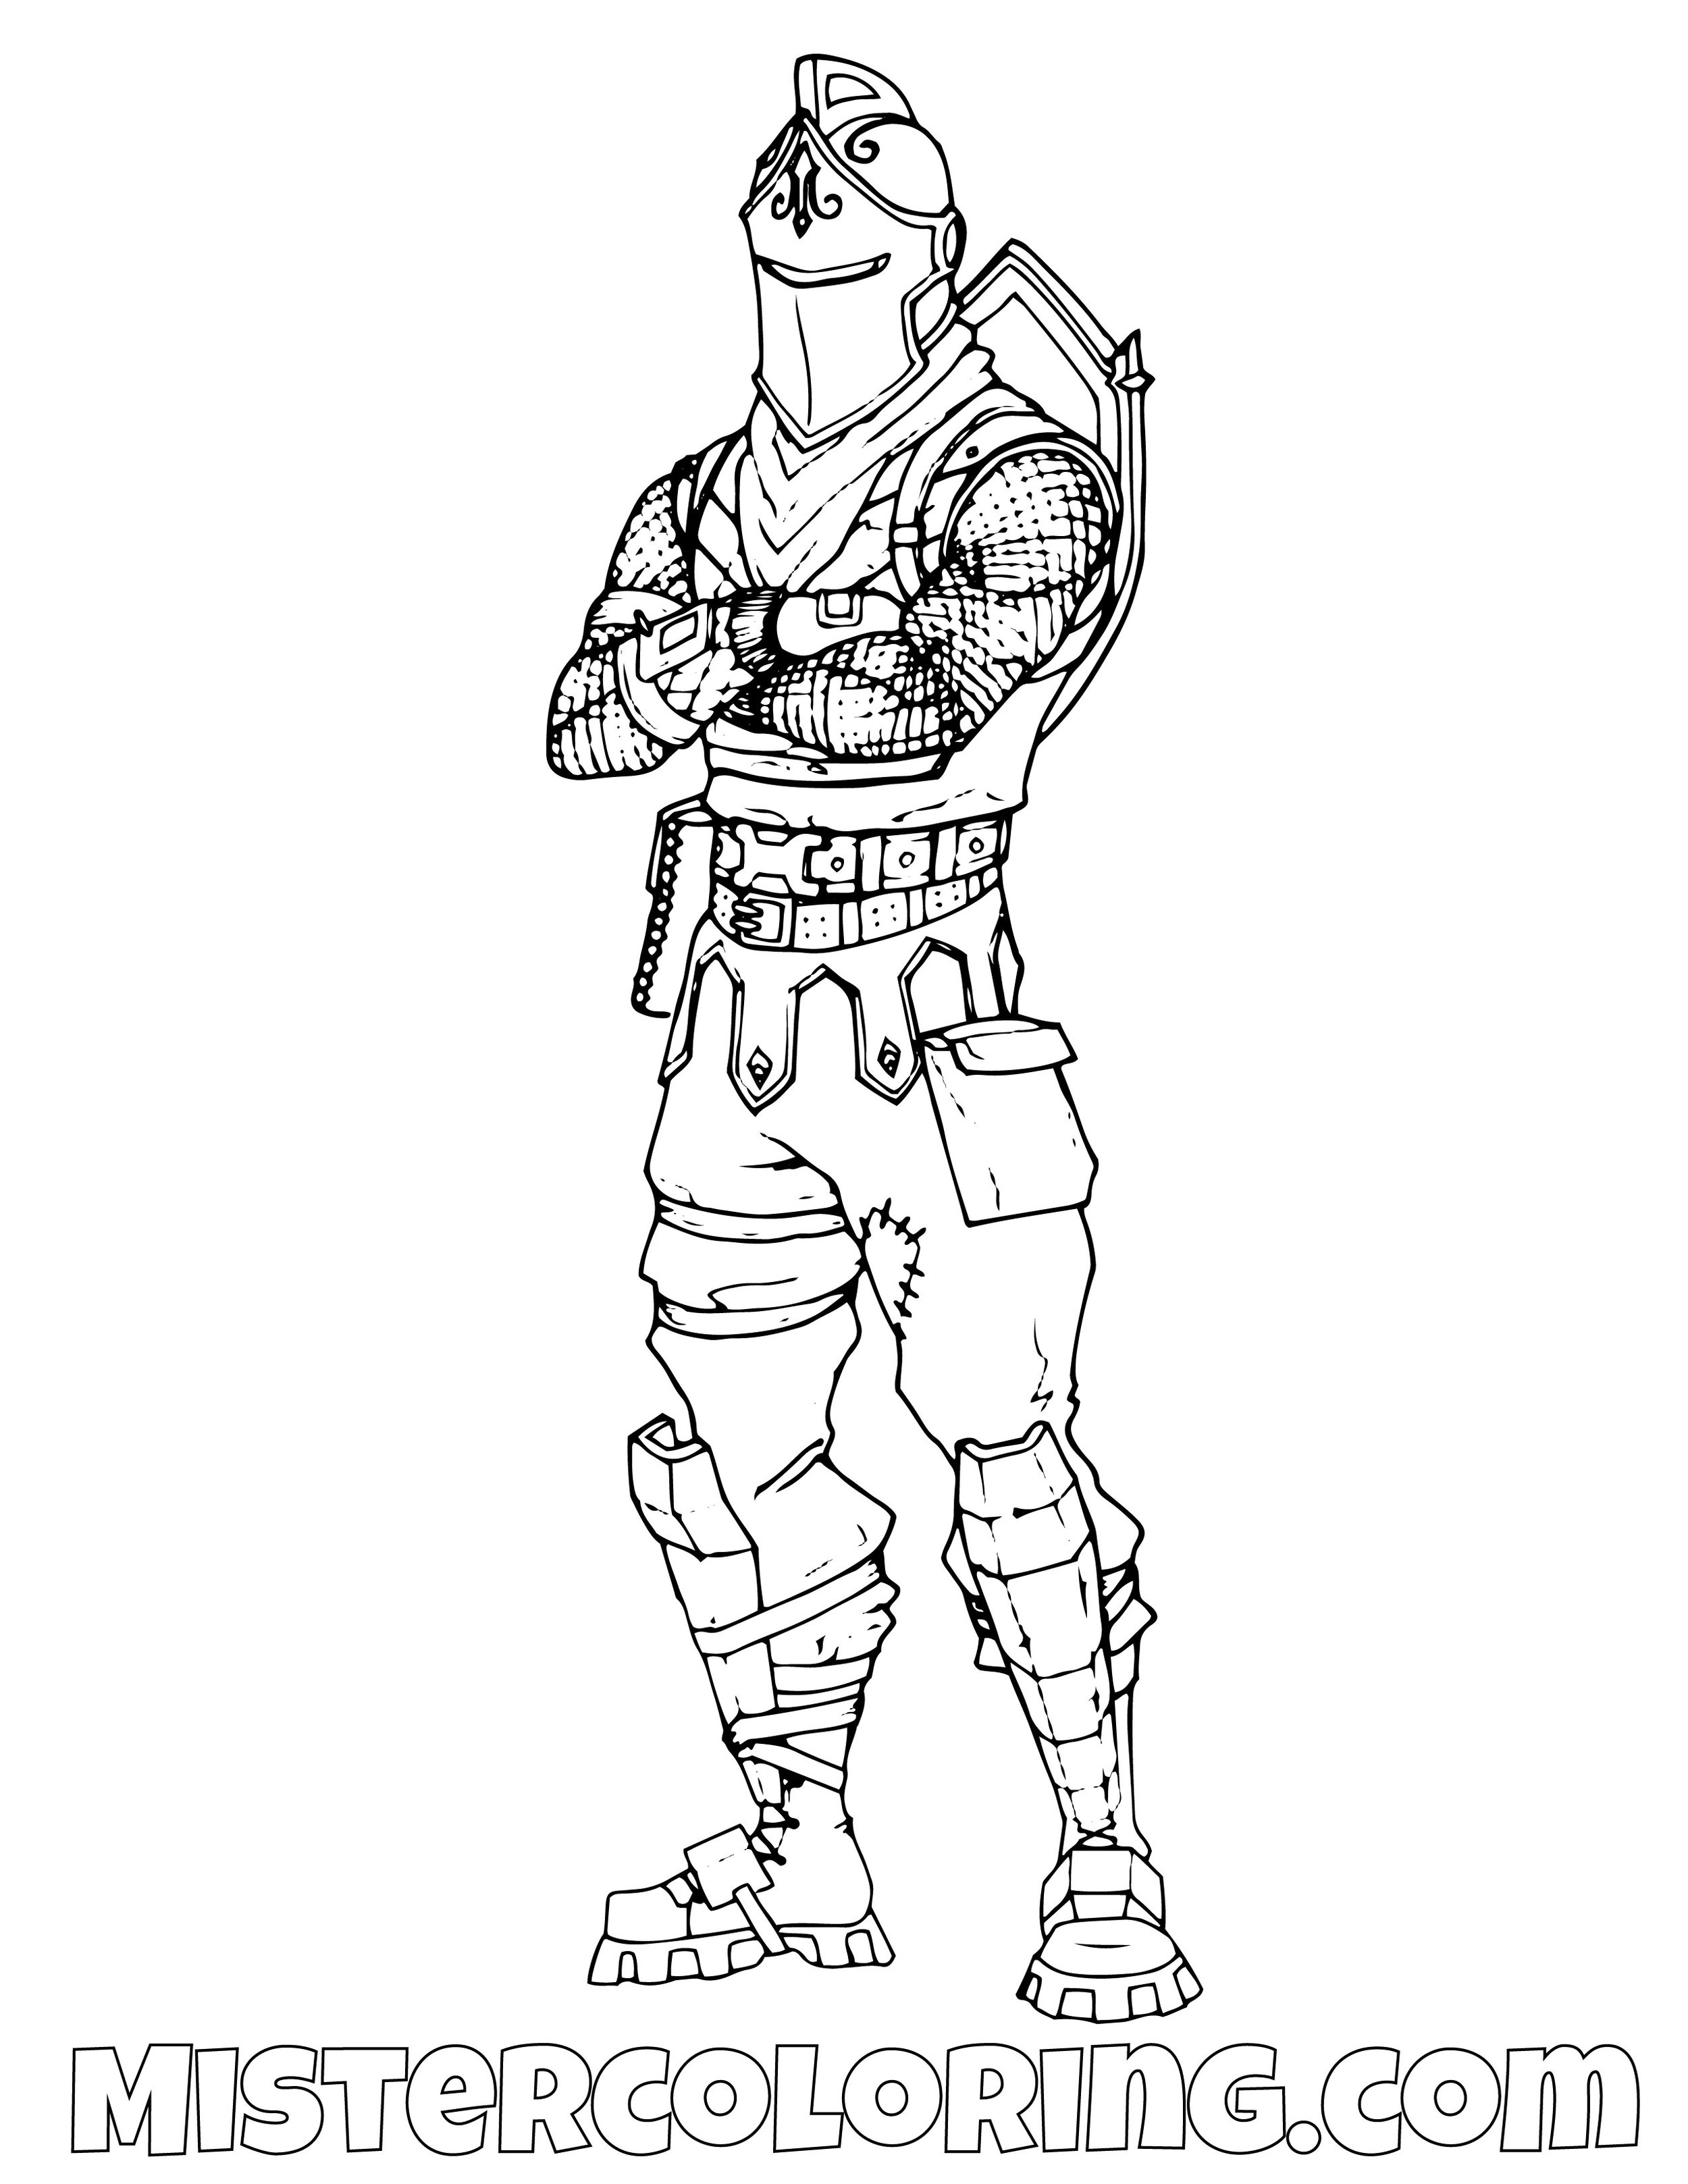 Black Knight Posing Fortnite Coloring Page